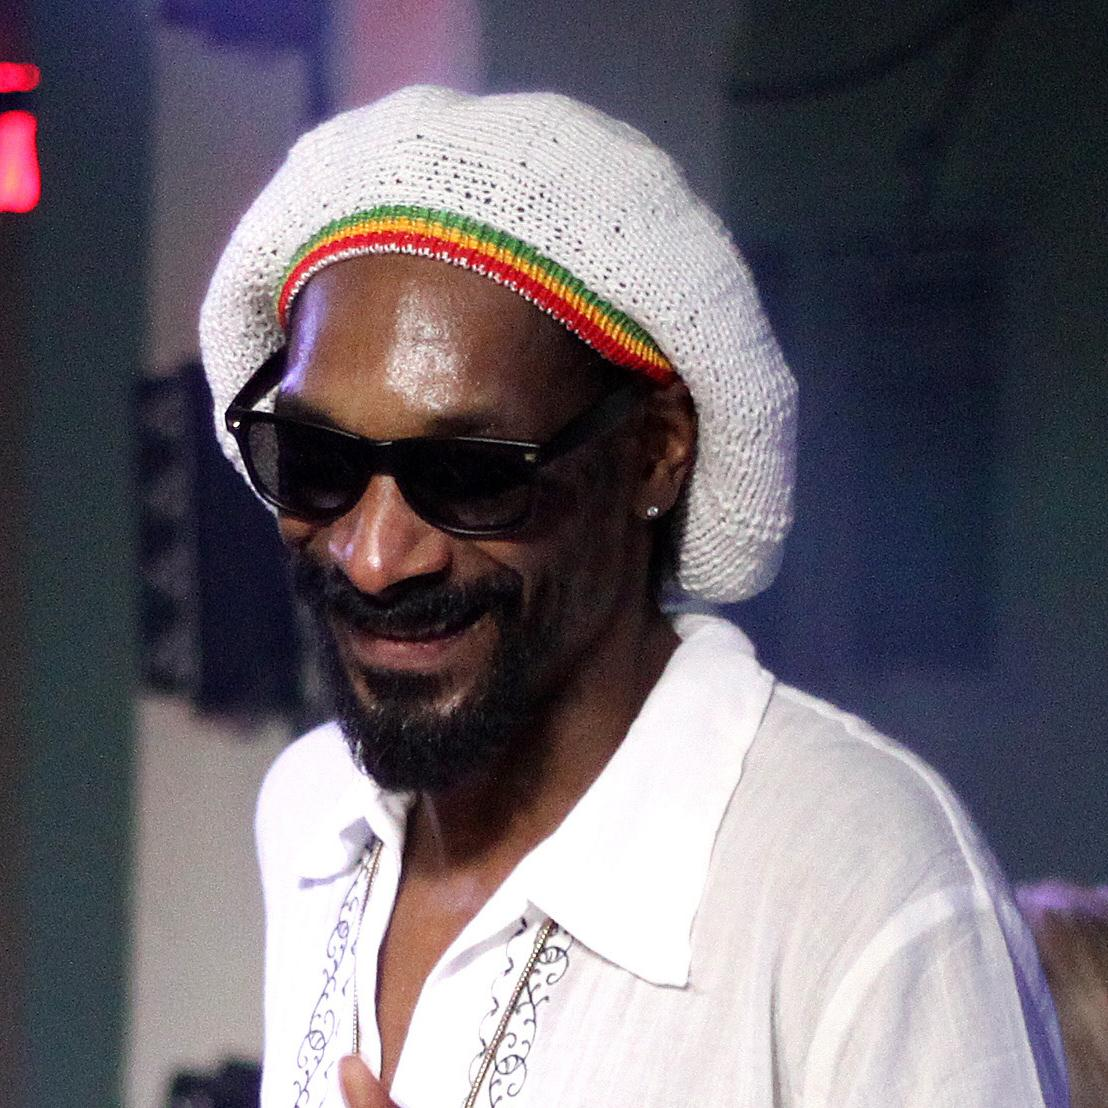 Snoop Dogg Net Worth 2021 Height Age Bio And Real Name Tall and very slim, he seemed to be born to become a celebrity. snoop dogg net worth 2021 height